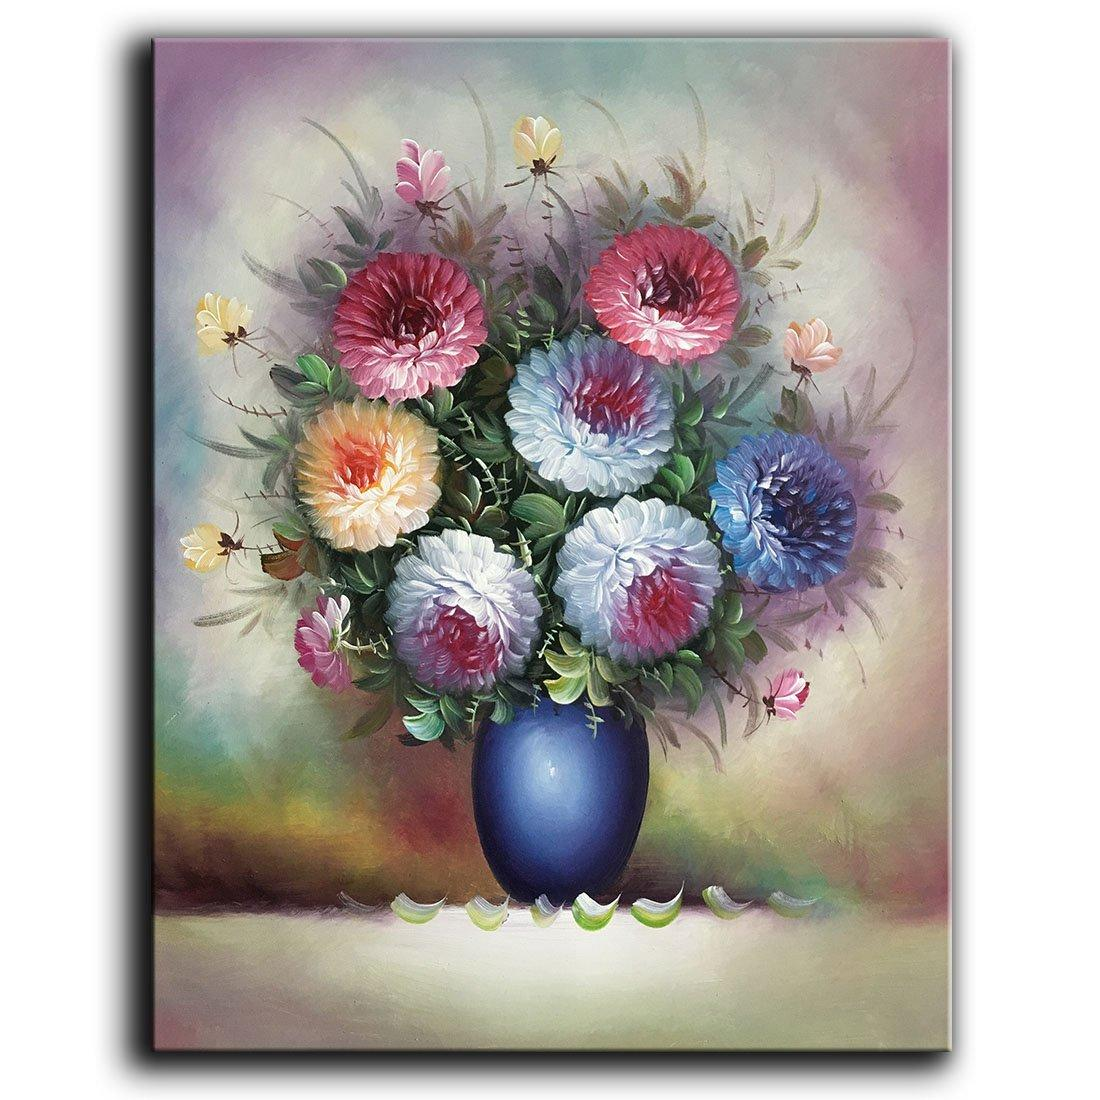 2018 100 hand painted oil painting on canvas beautiful colorful 2018 100 hand painted oil painting on canvas beautiful colorful blooming flowers paintings modern home decor art from chinaart2013 2714 dhgate izmirmasajfo